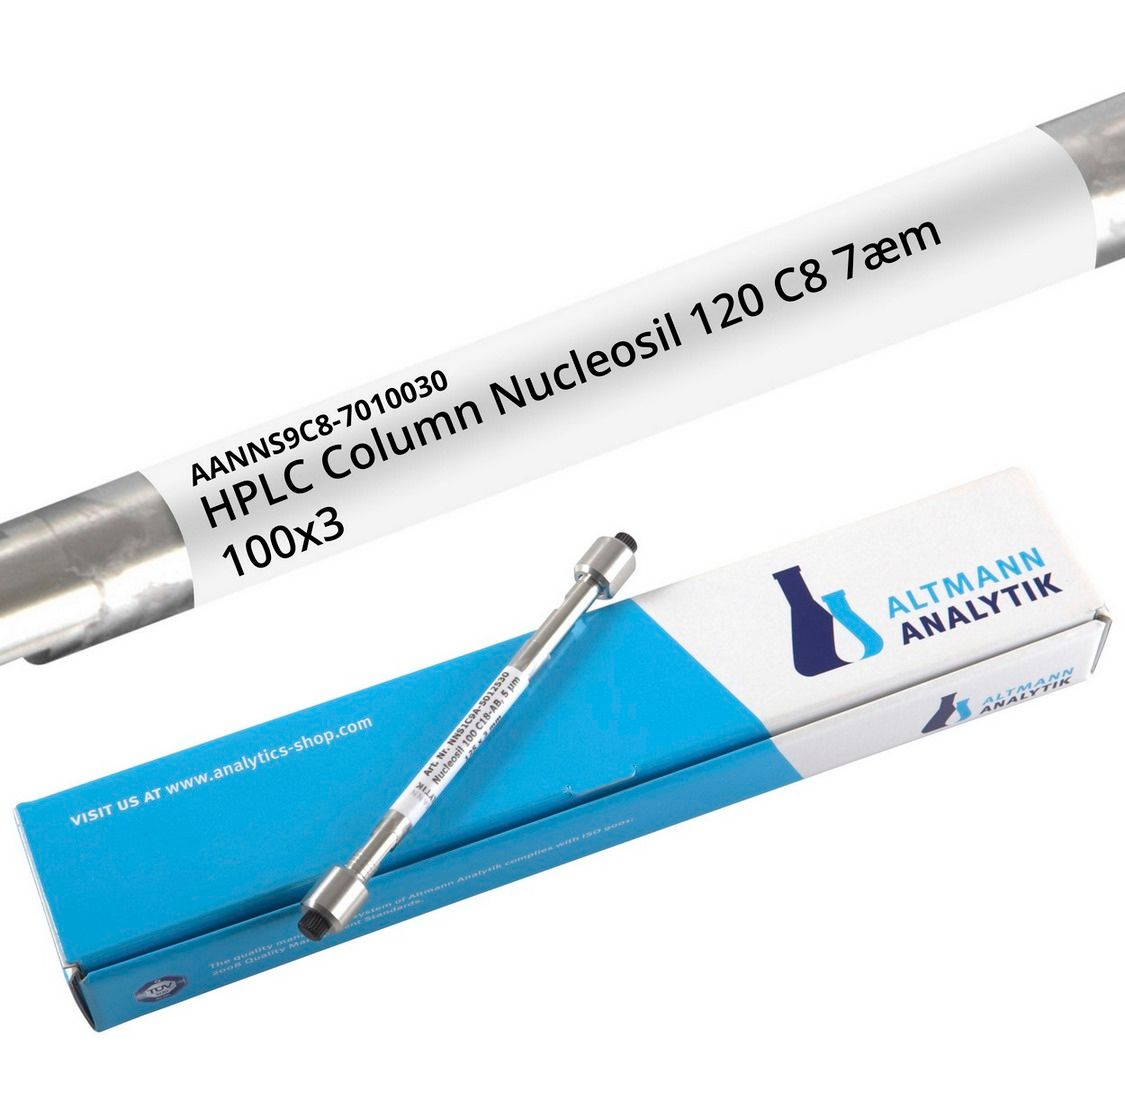 HPLC Column Nucleosil 120 C8 7µm 100x3 mm, 120A